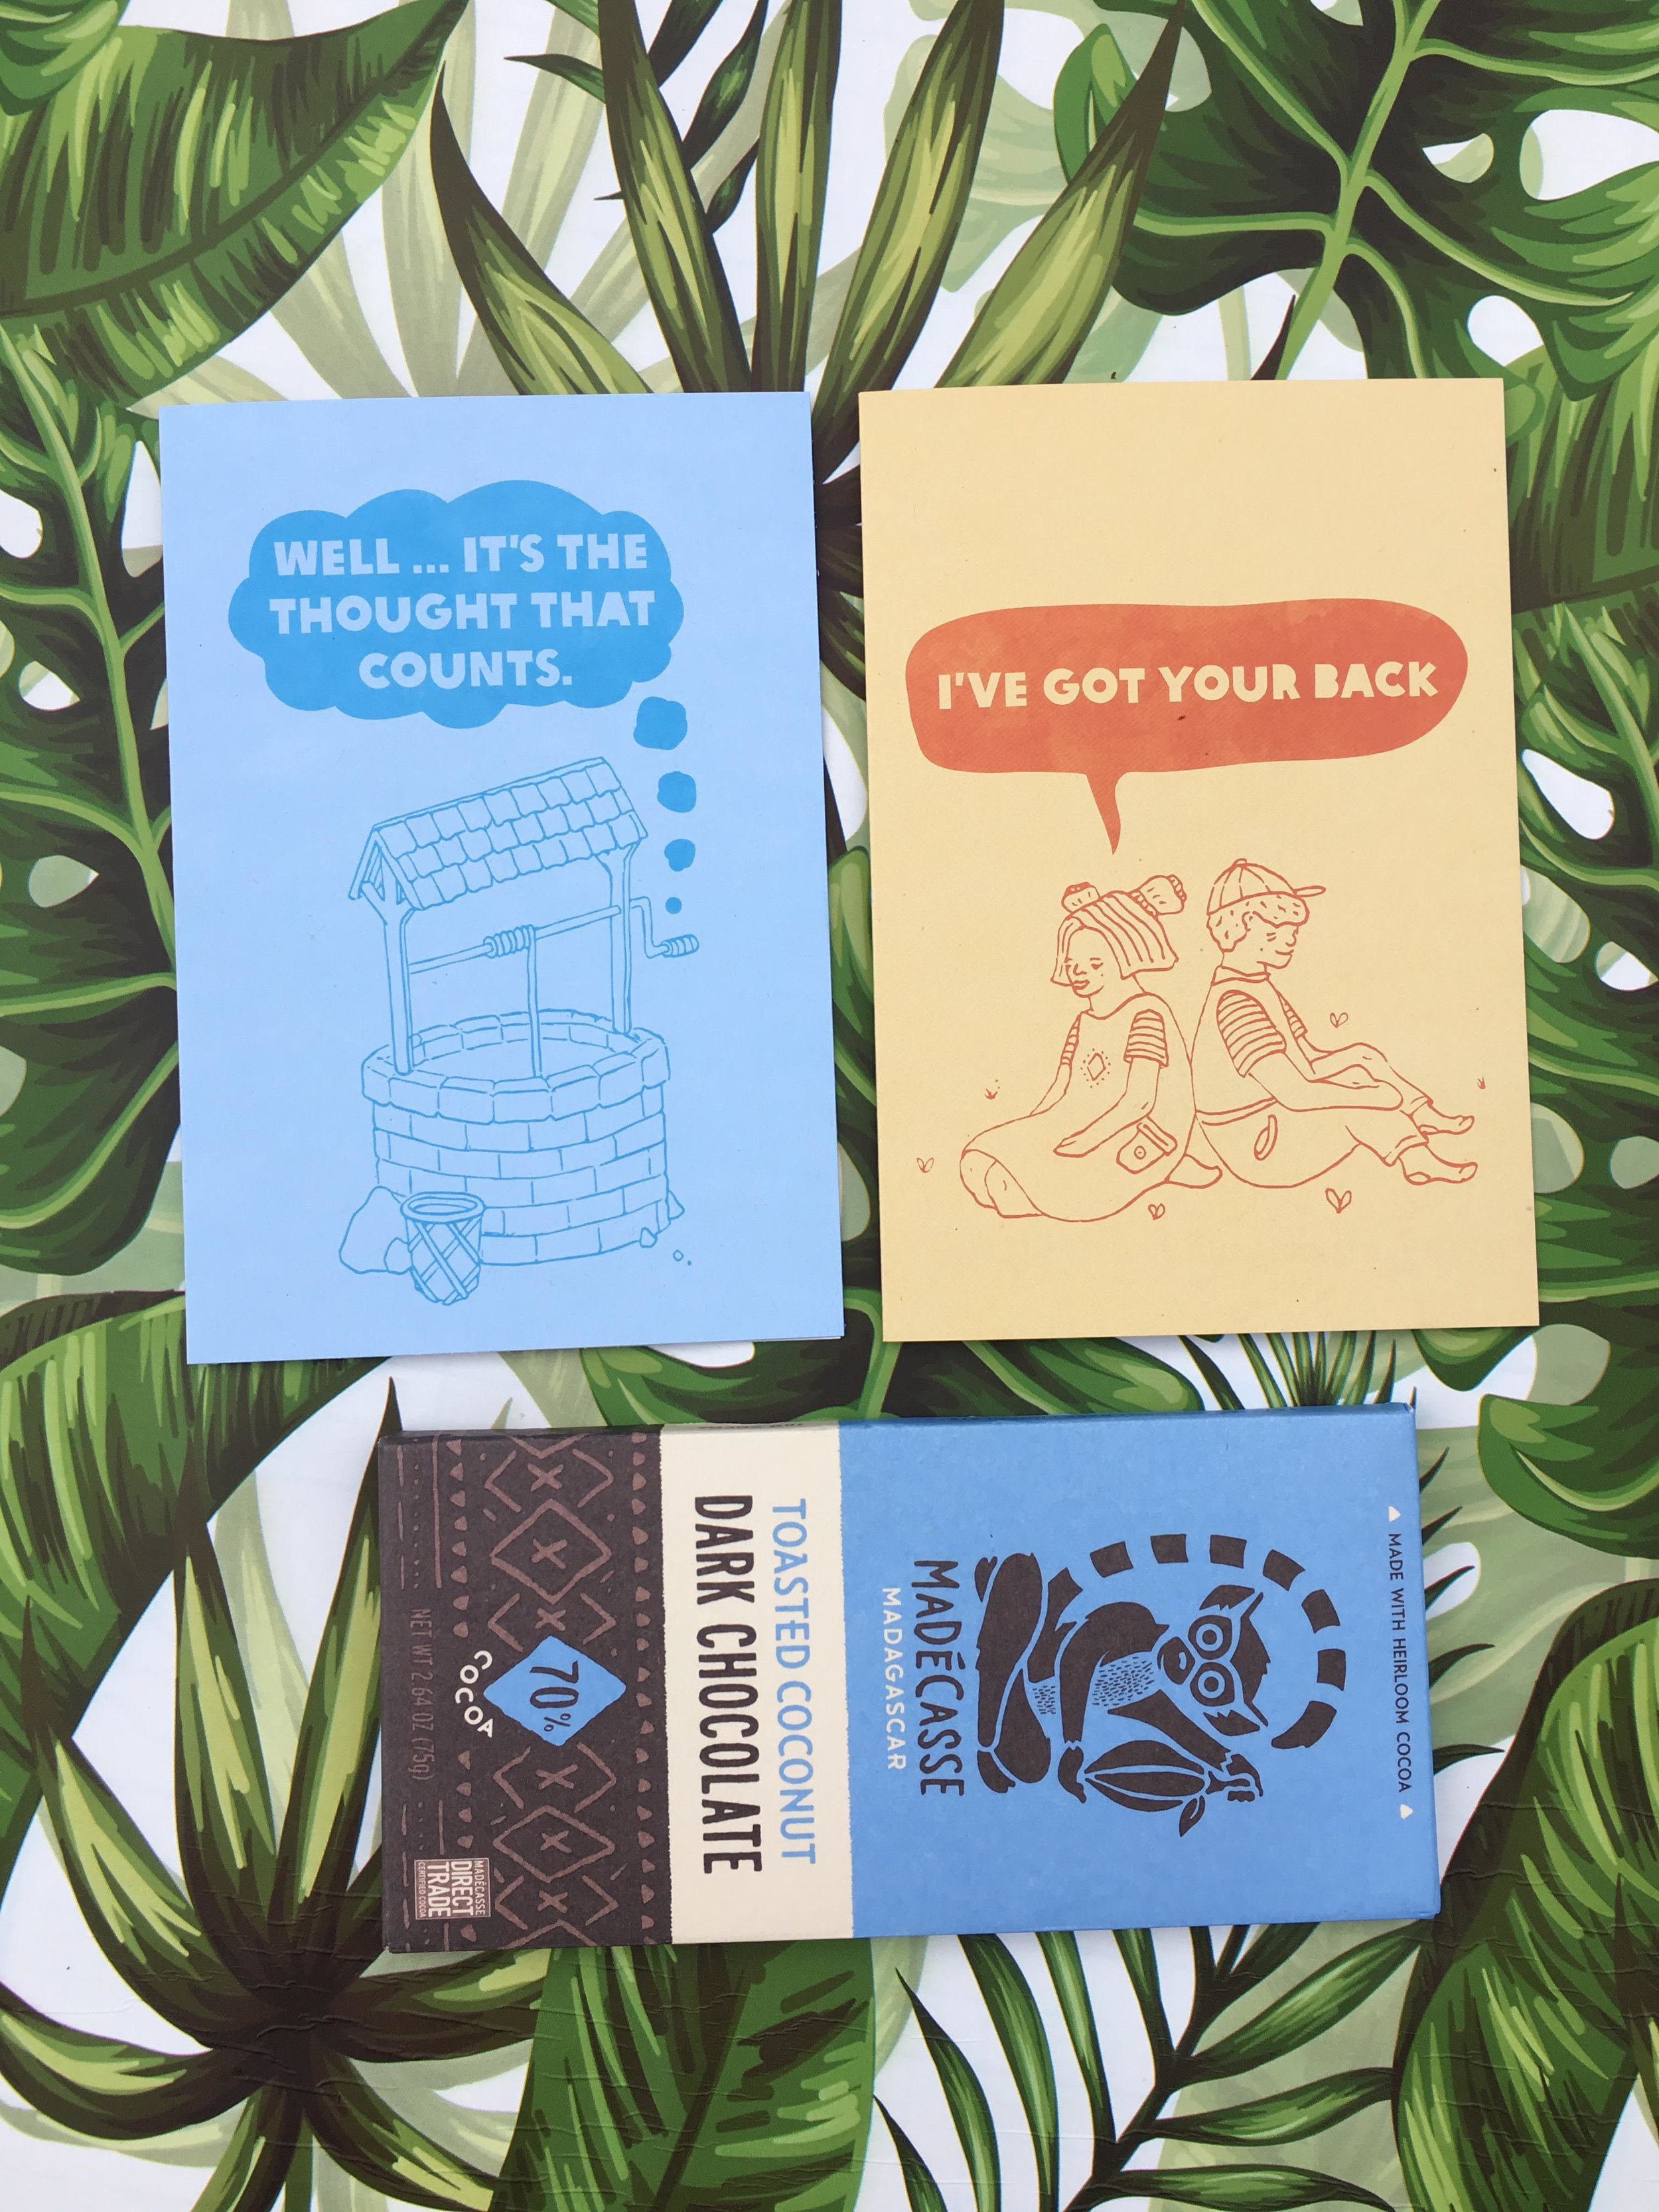 My gift cards + vegan chocolate from the Oxfam store @jaclynmccosker